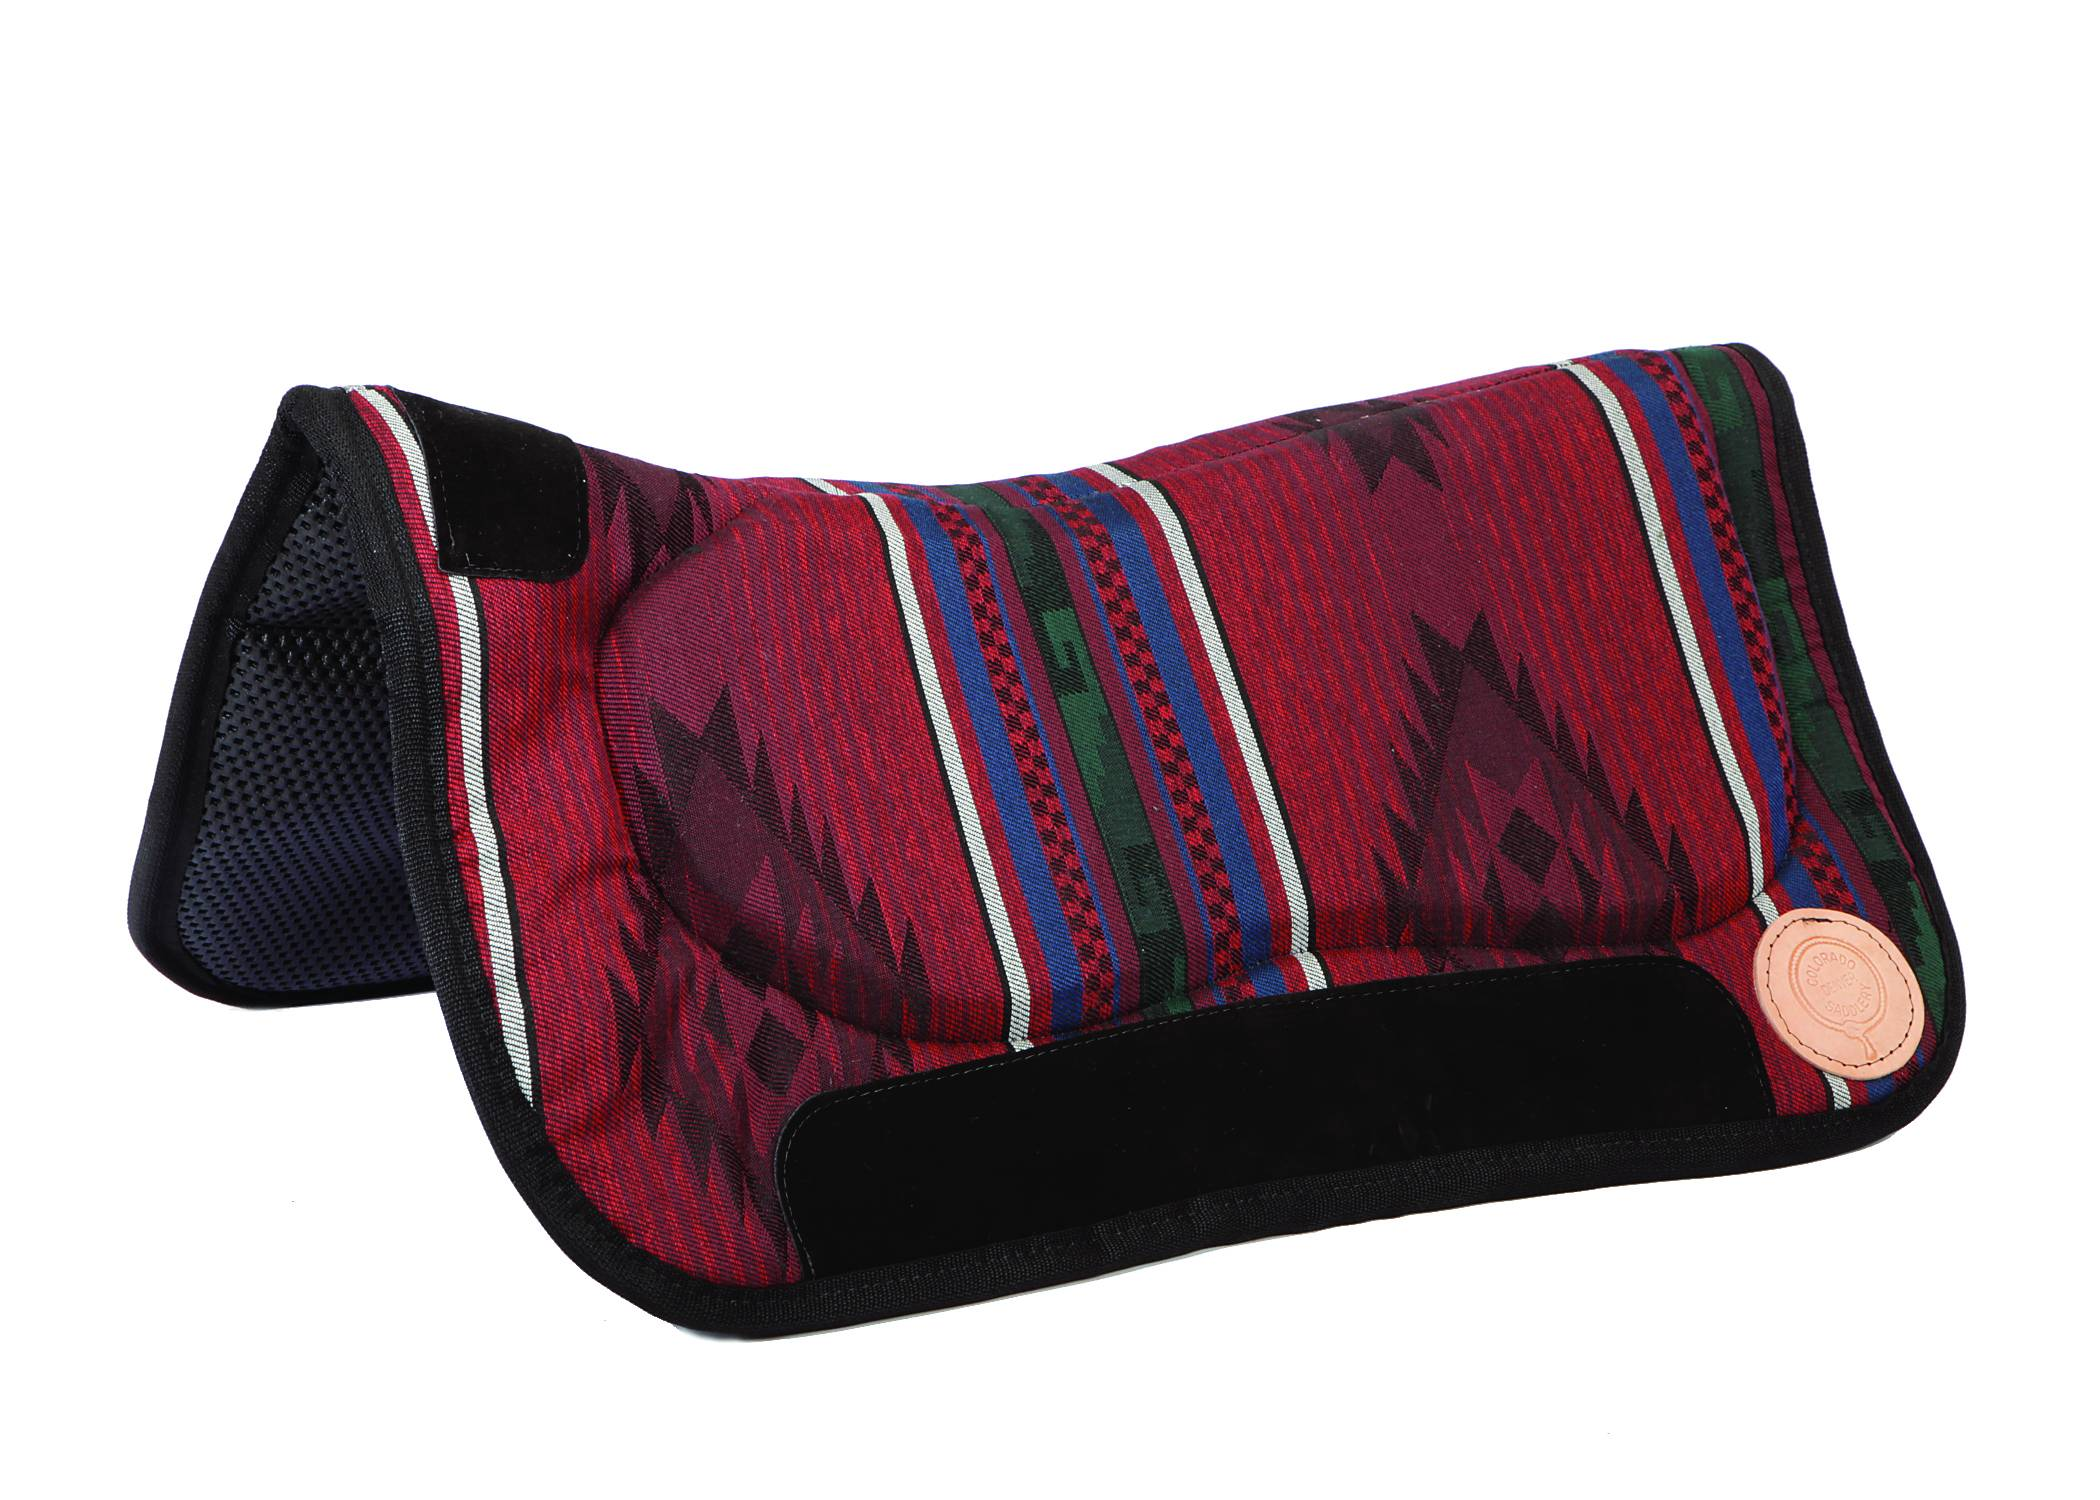 Colorado Saddlery Wild Rose Contoured Waffled Neoprene Bottom Saddle Pad